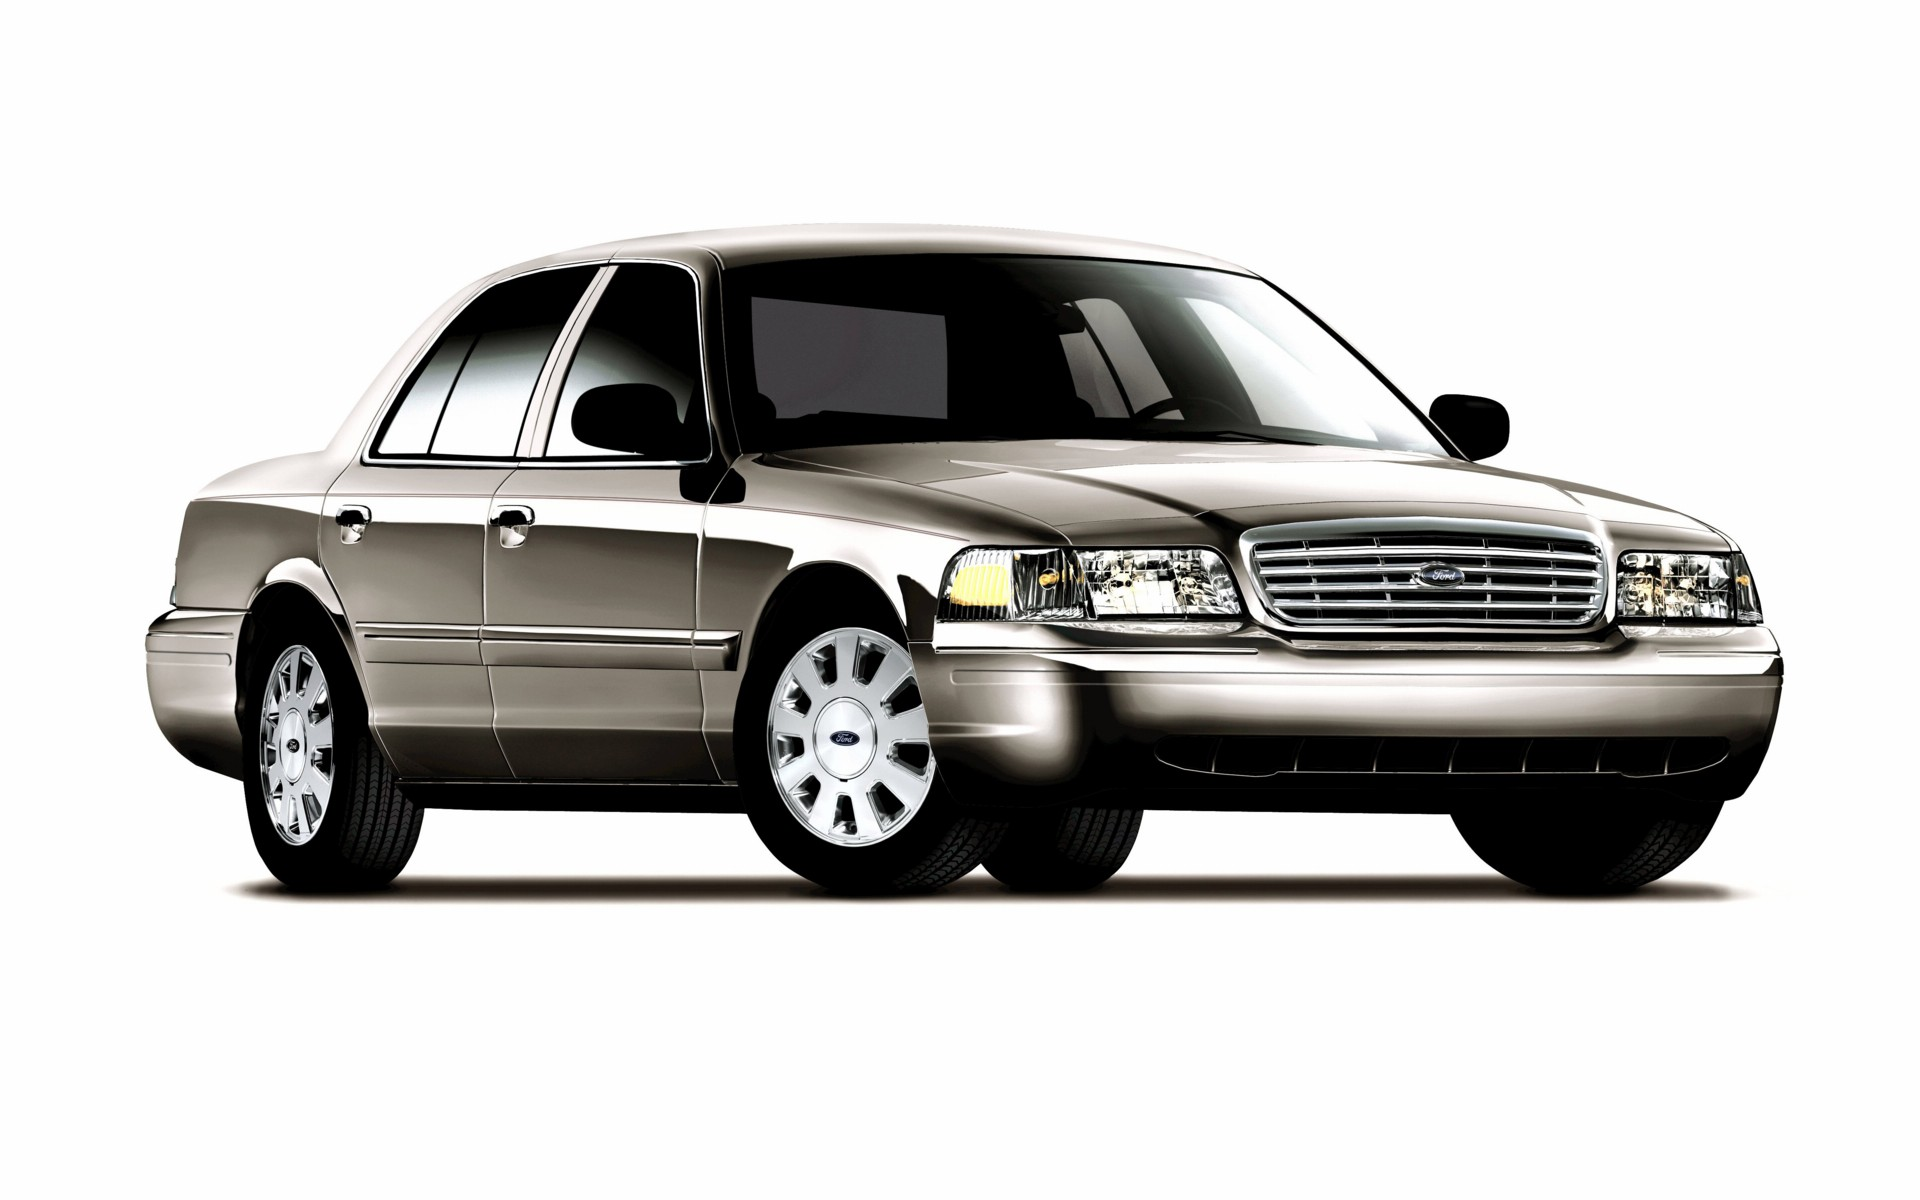 2007 Ford Crown Victoria Pictures, History, Value, Research, News - conceptcarz.com